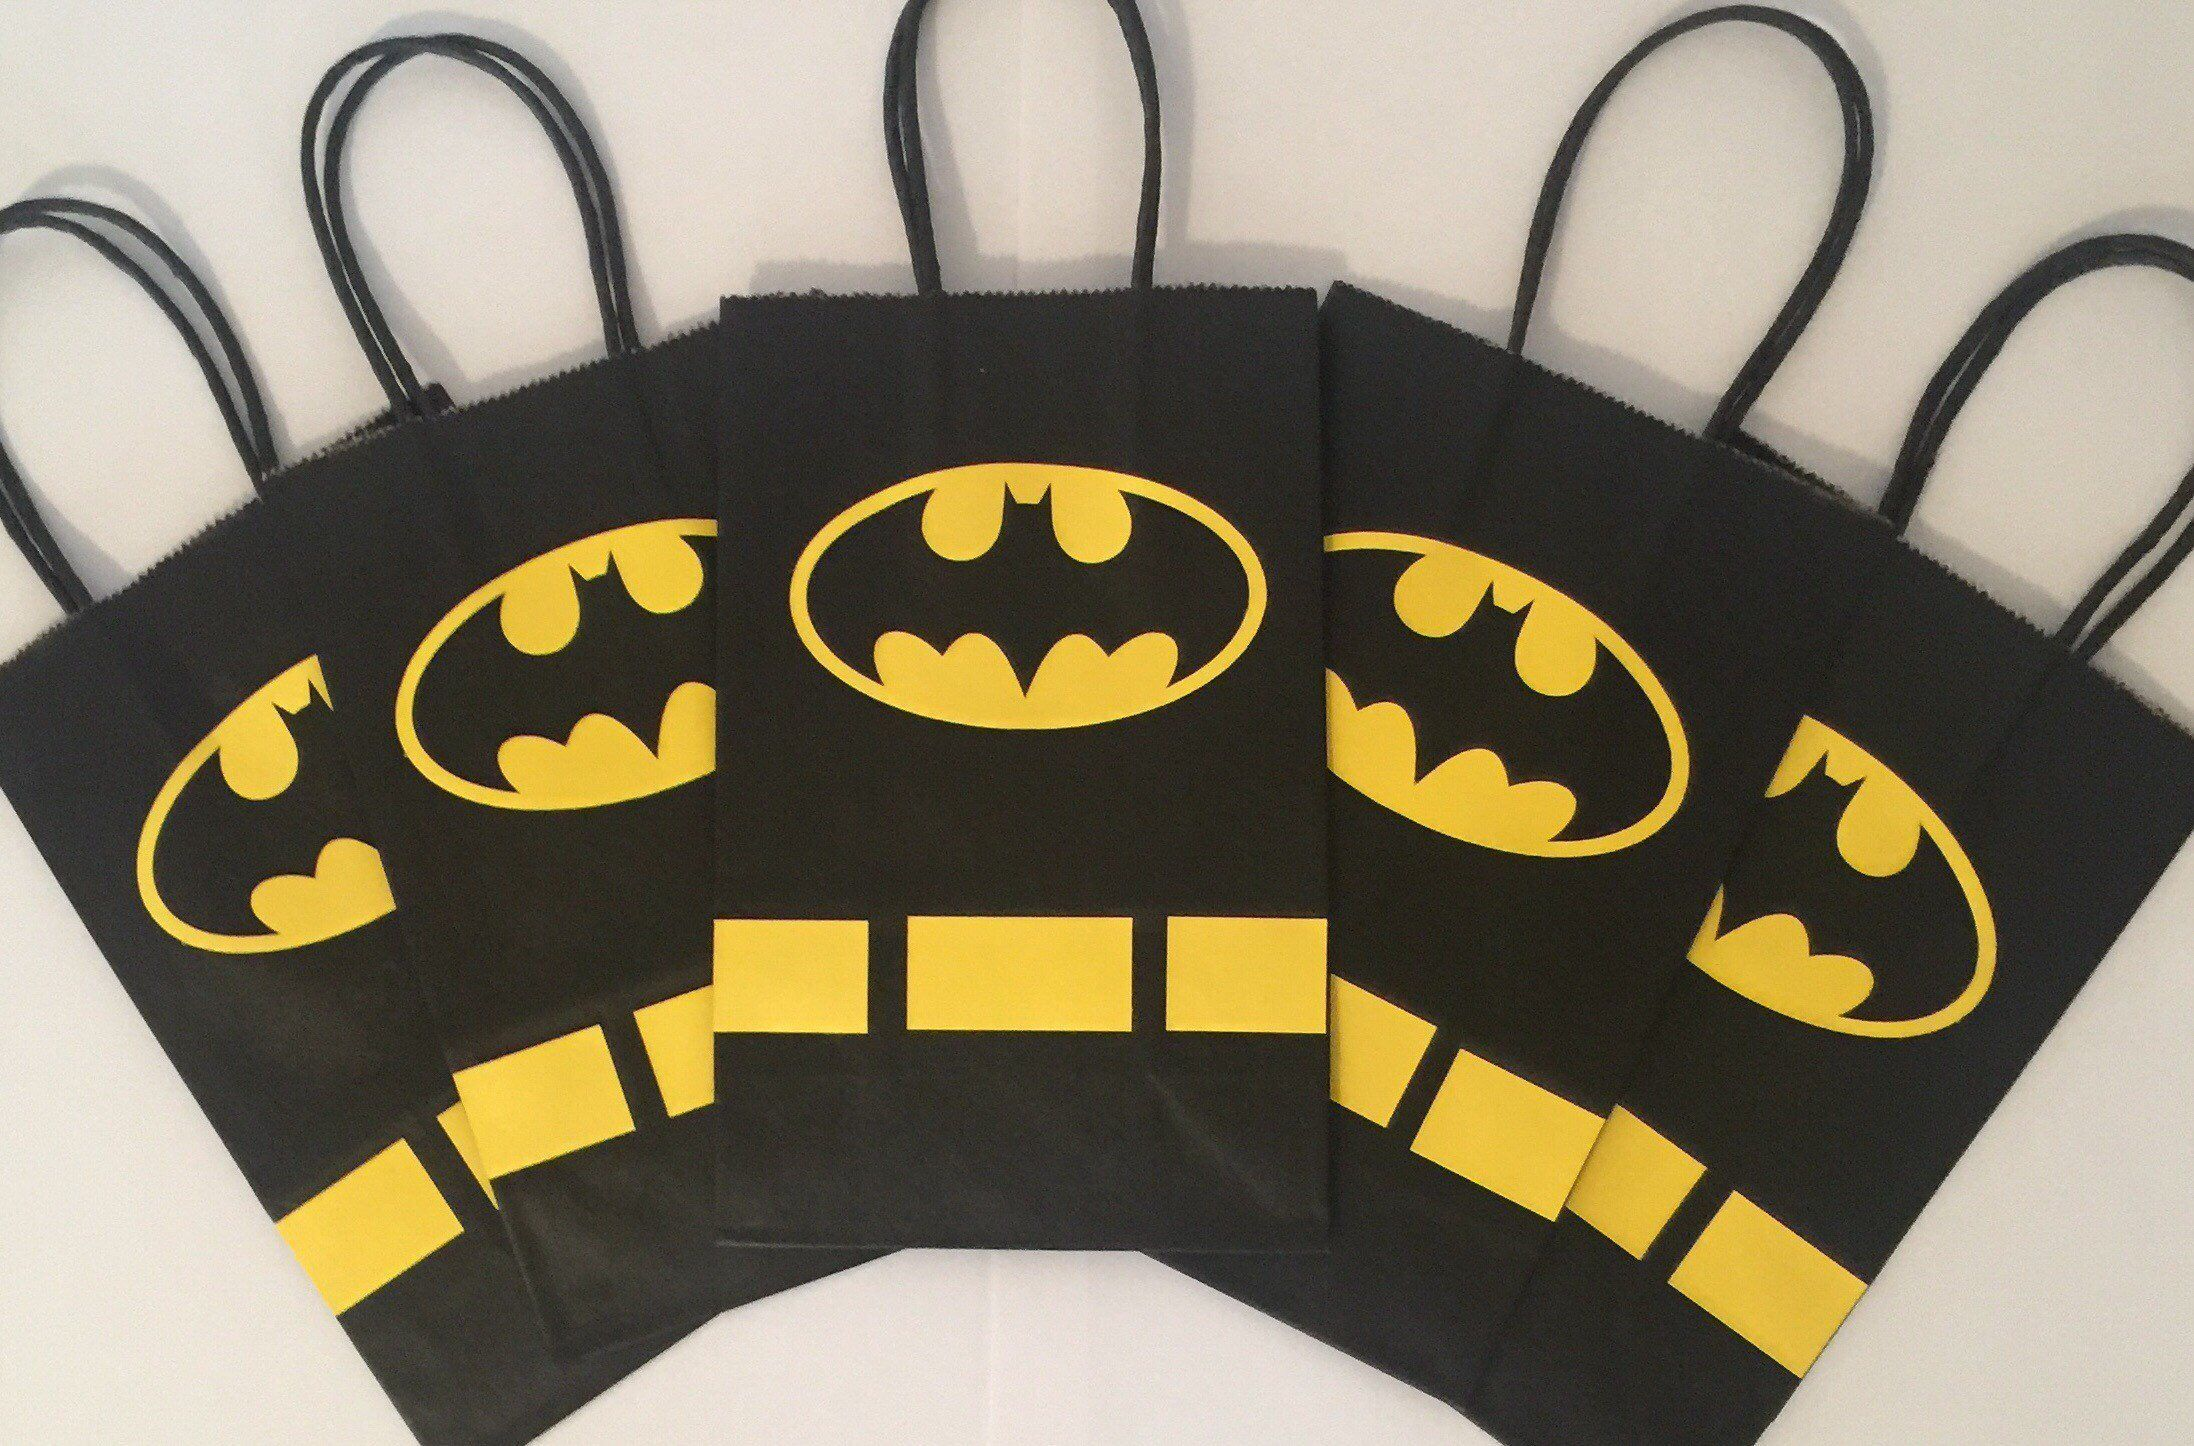 16 PCS Party Gift Bags for Batman Party Supplies Party Gift Goody Treat Candy Bags for Superhero Birthday Party Supplies Including 2 Patterns for Kids Birthday Party Decorations